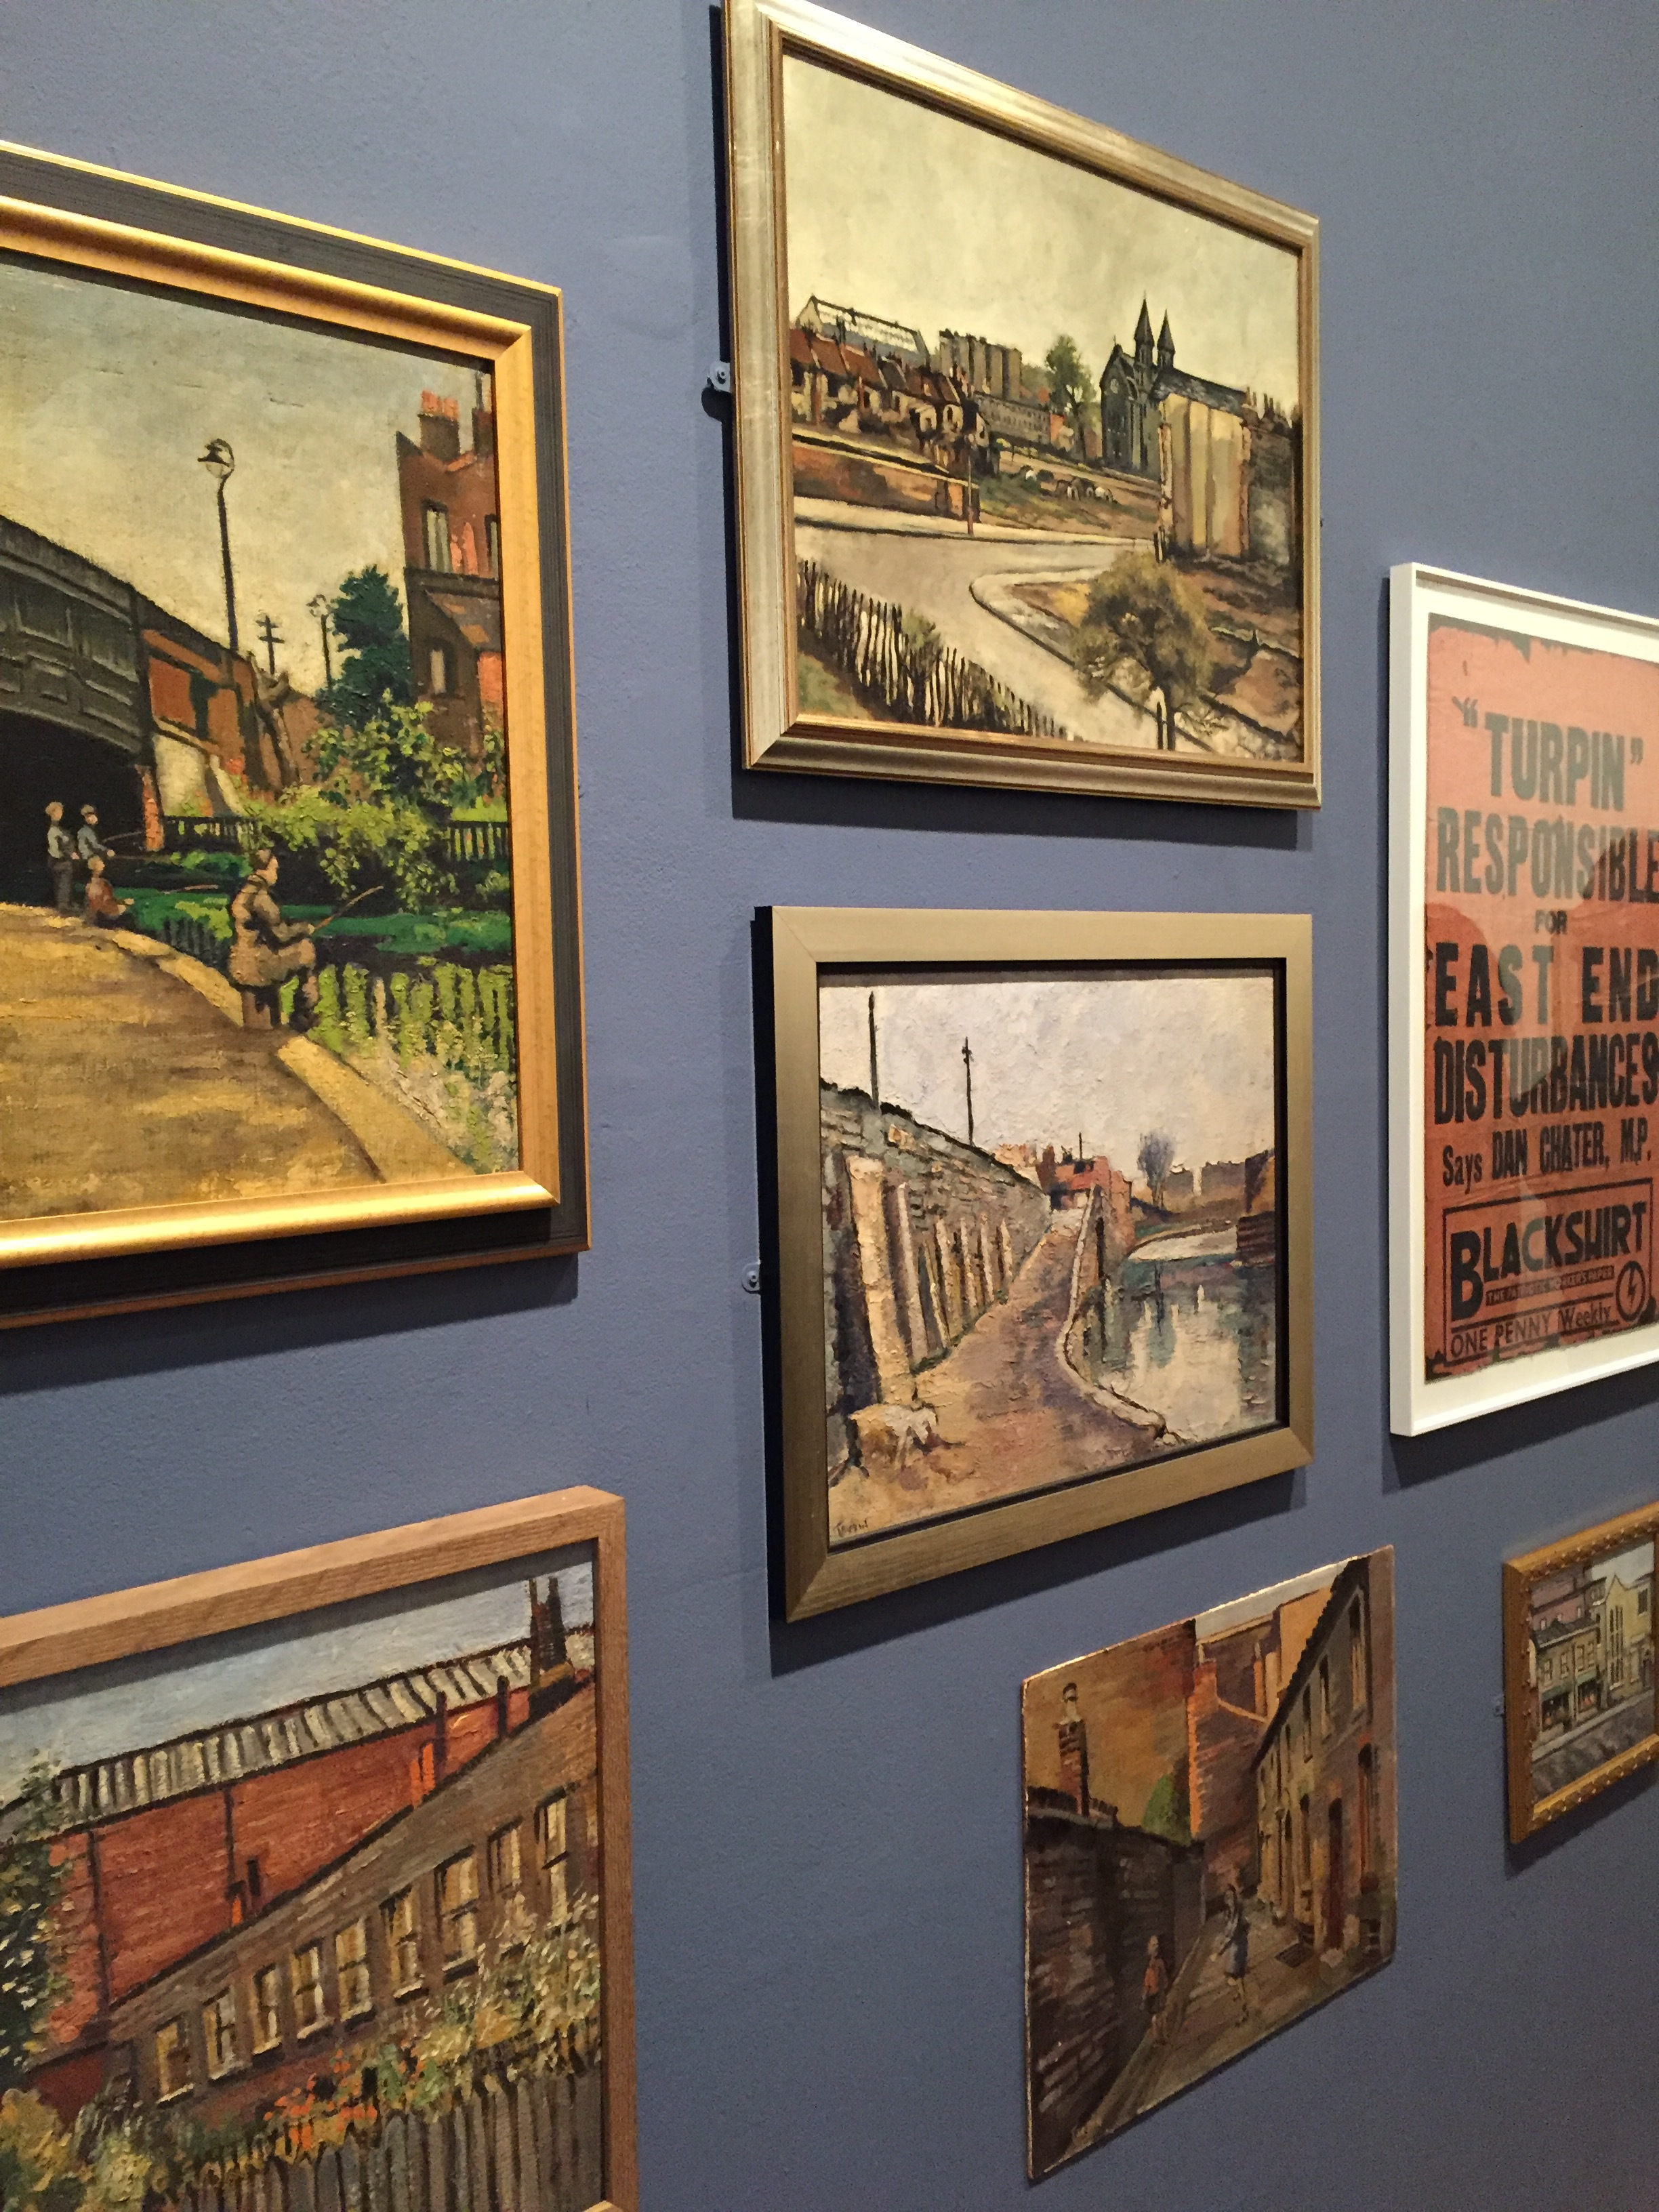 Works by Albert Turpin.